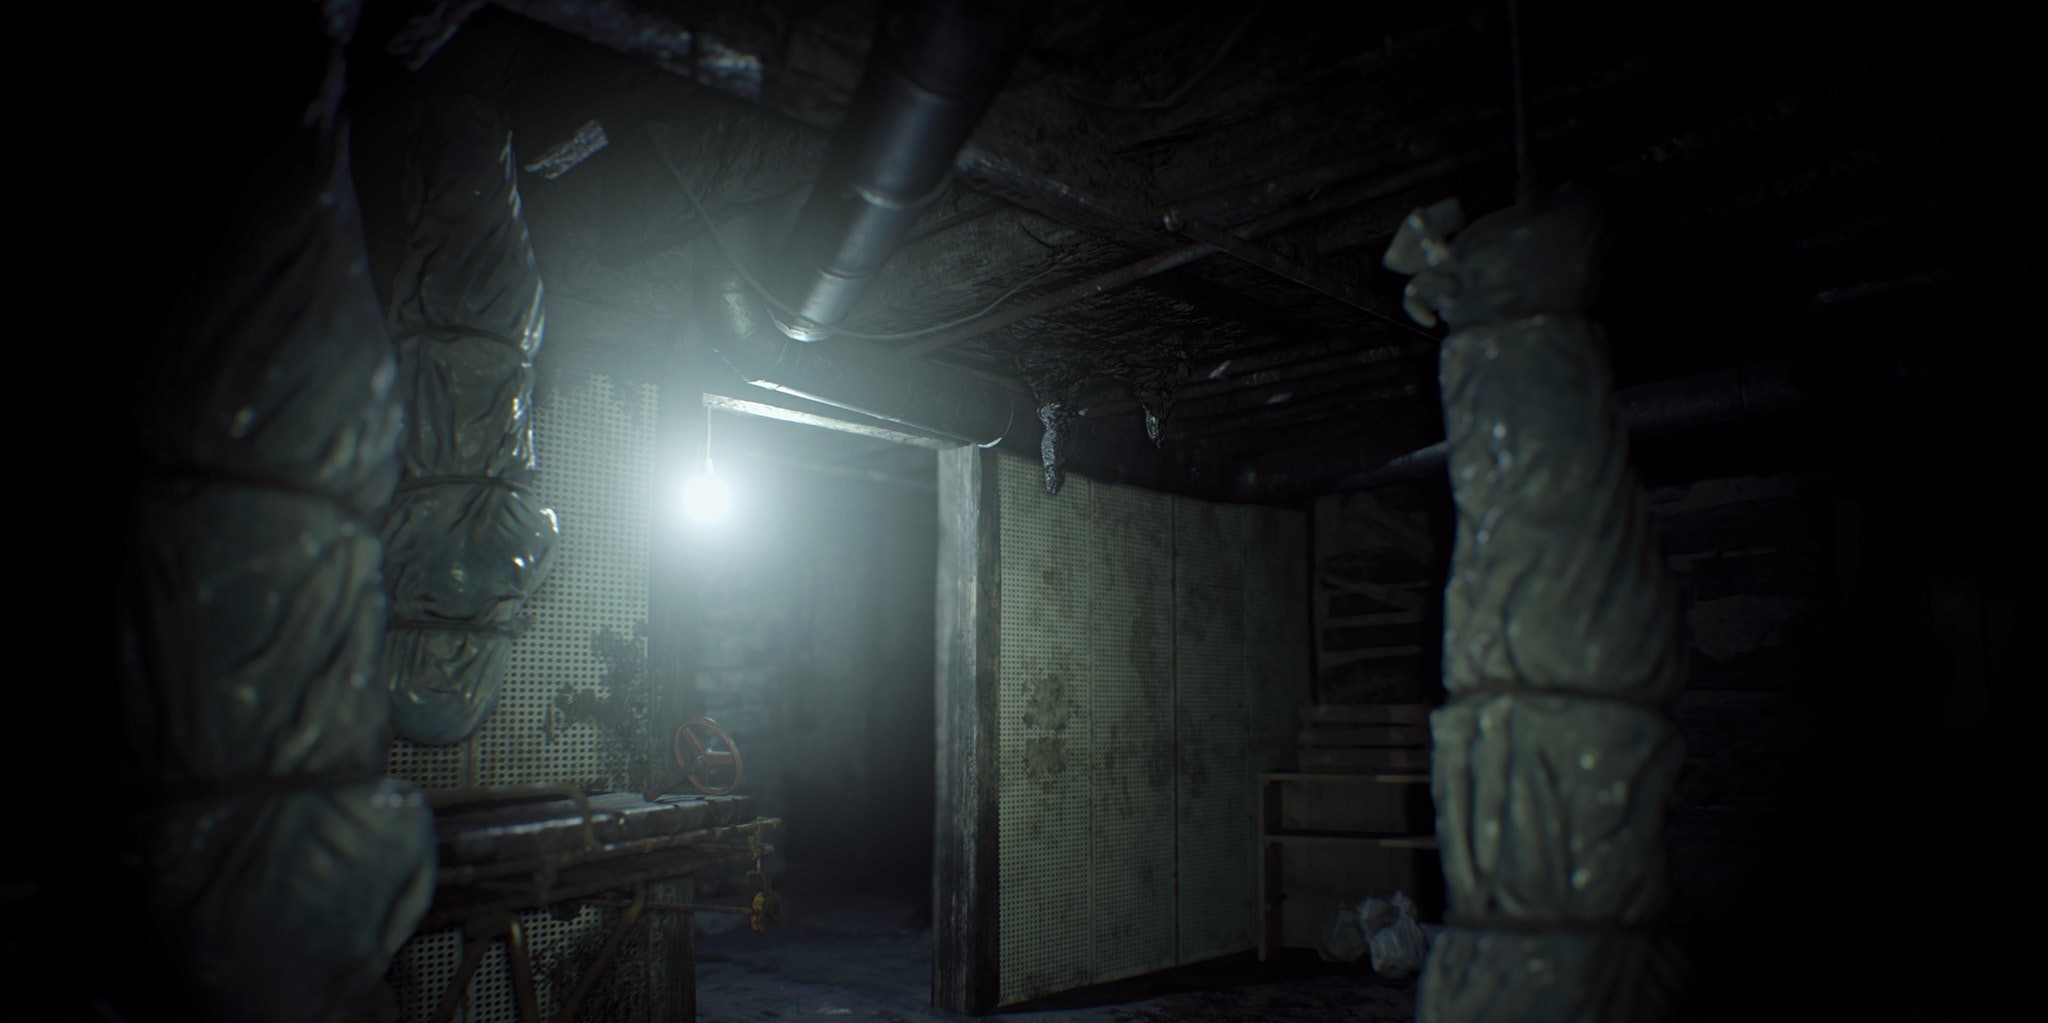 Dead bodies abound in 'Resident Evil 7'.